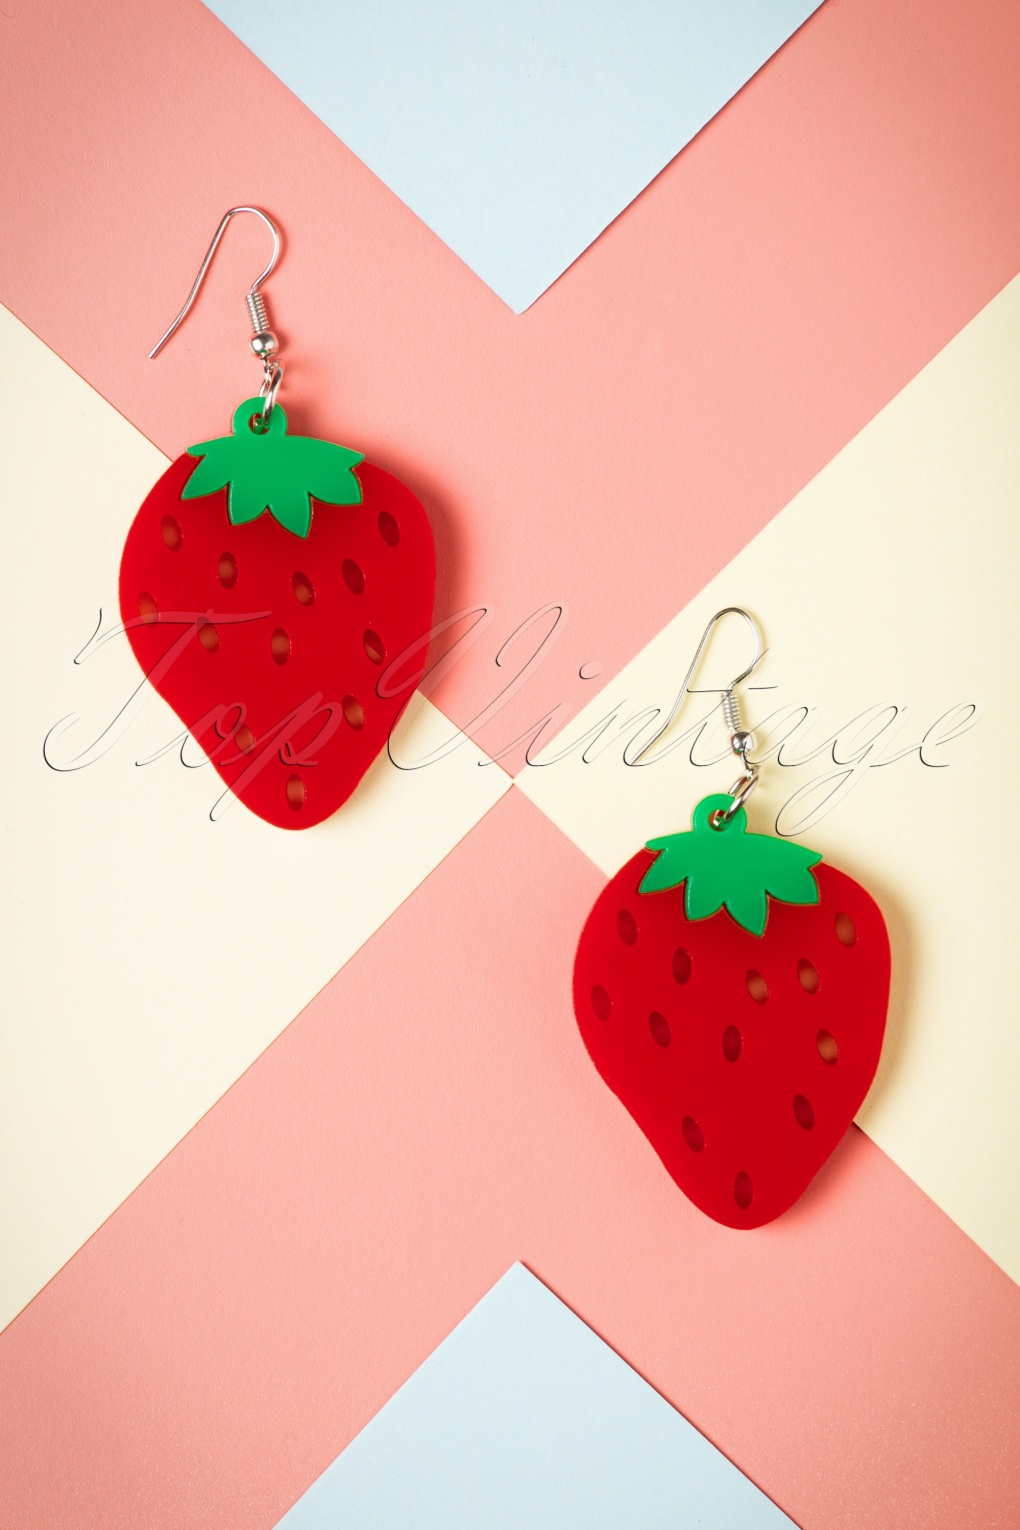 Strawberry clothing store website